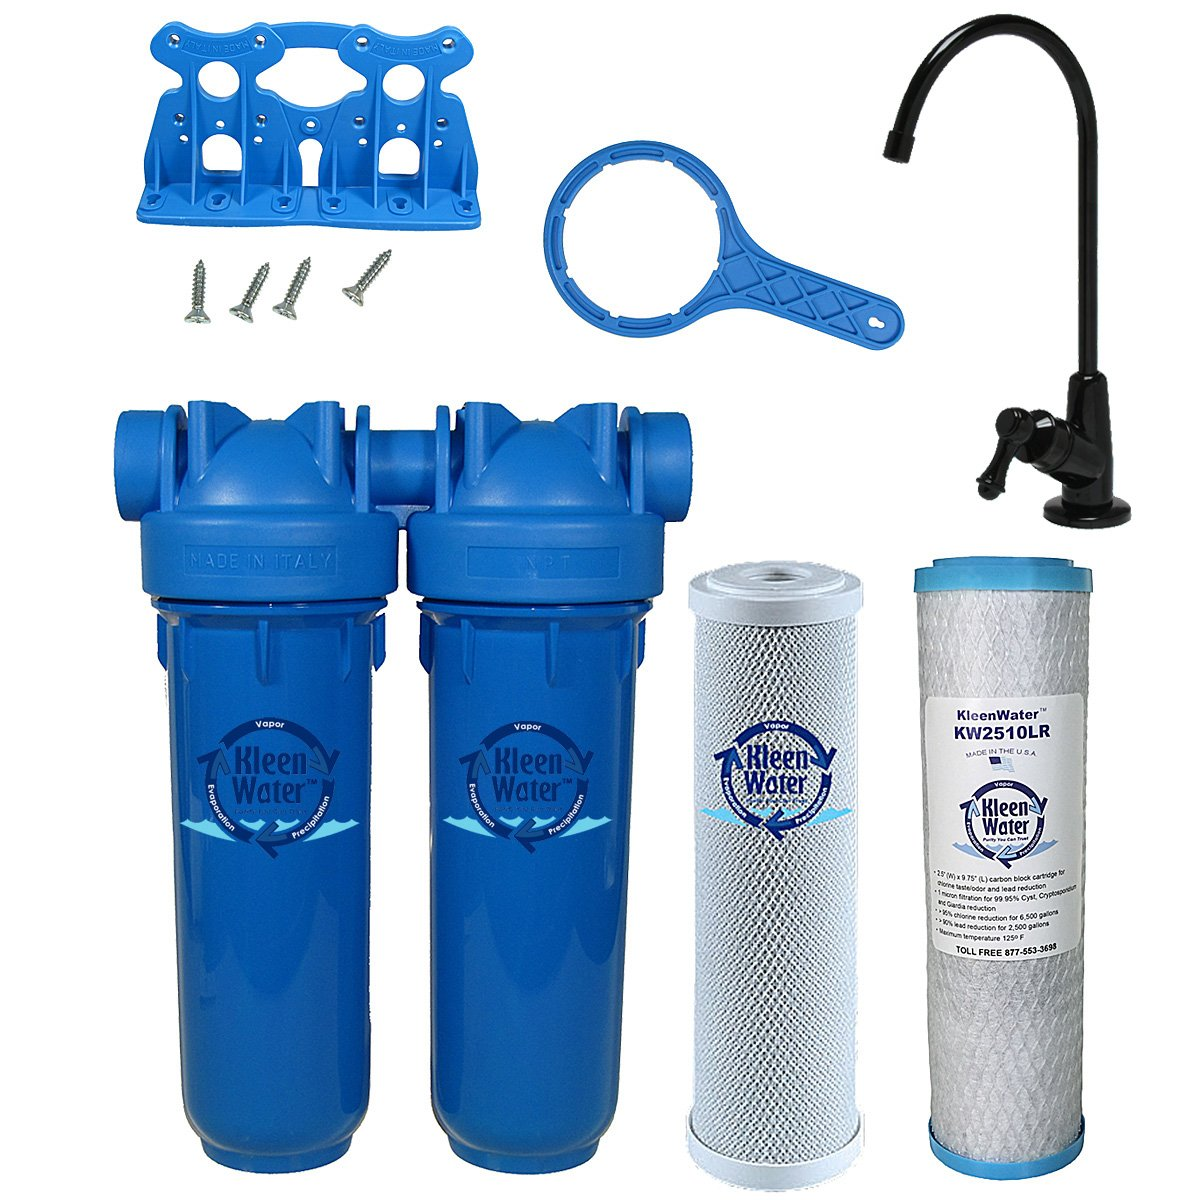 Chlorine Sediment Chloramine Lead Water Filter, KleenWater KW1000 Chemical Removal Under Sink Drinking Water Filtration System, Black Faucet, Two Filter Cartridges (Black) by KleenWater